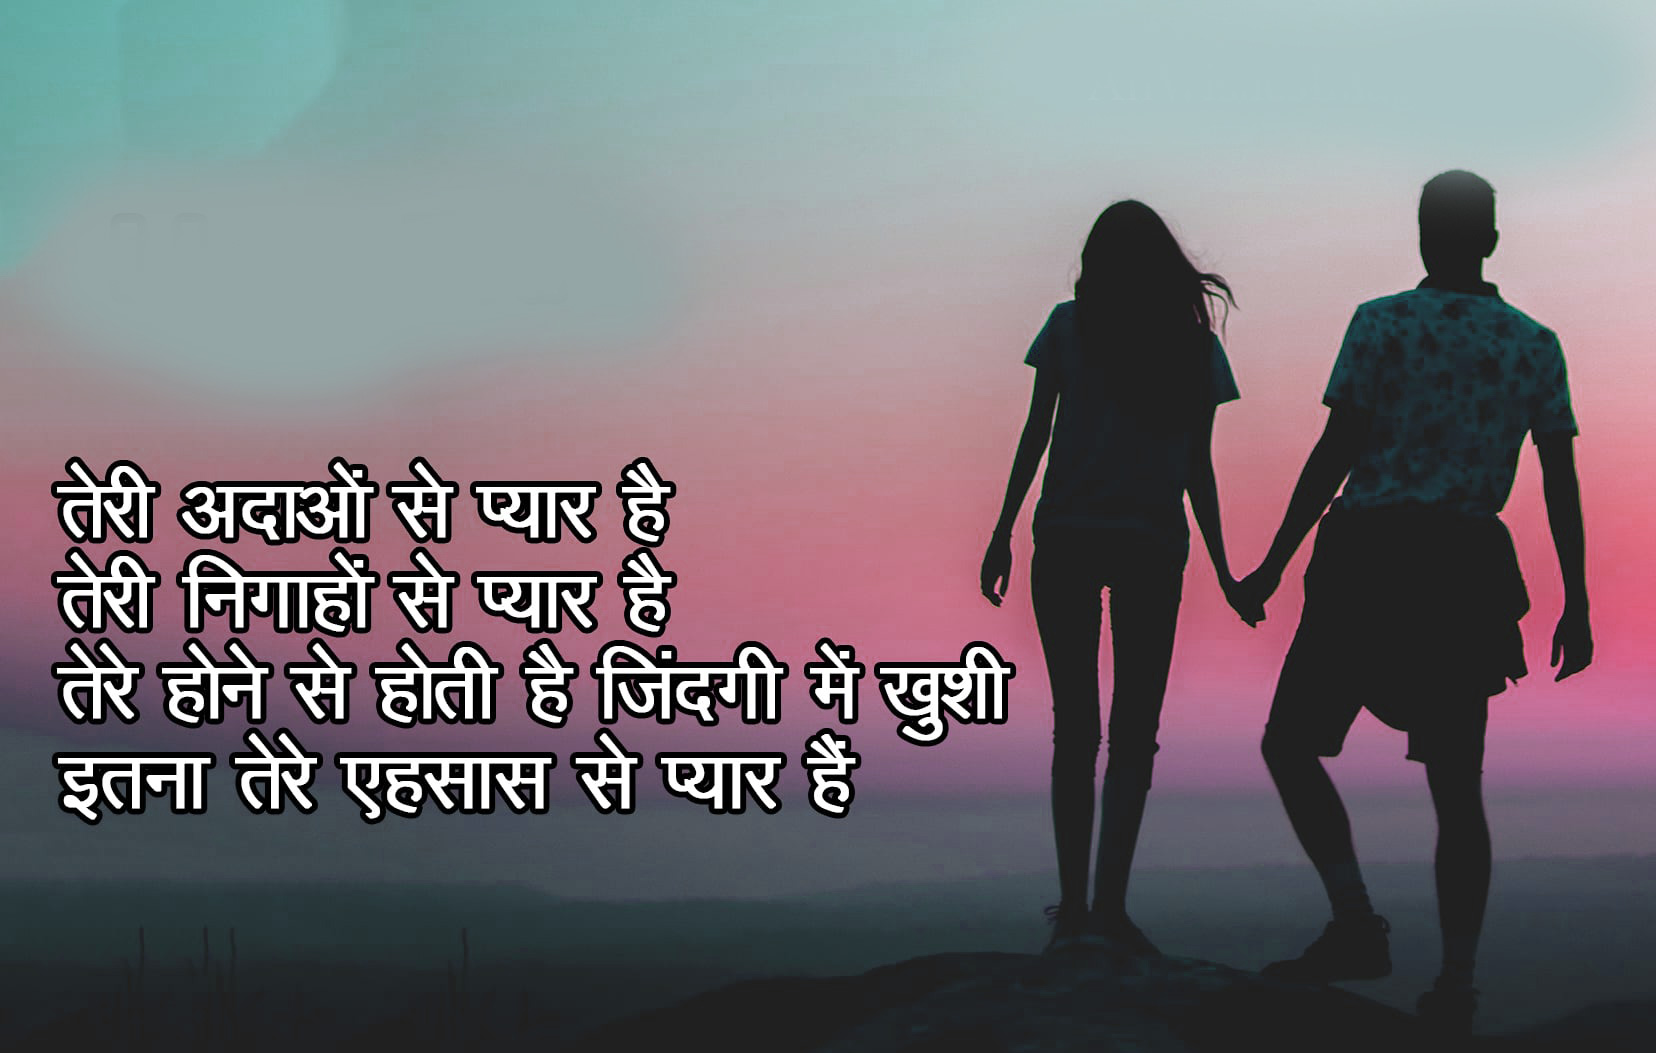 Shayari Wallpaper 41